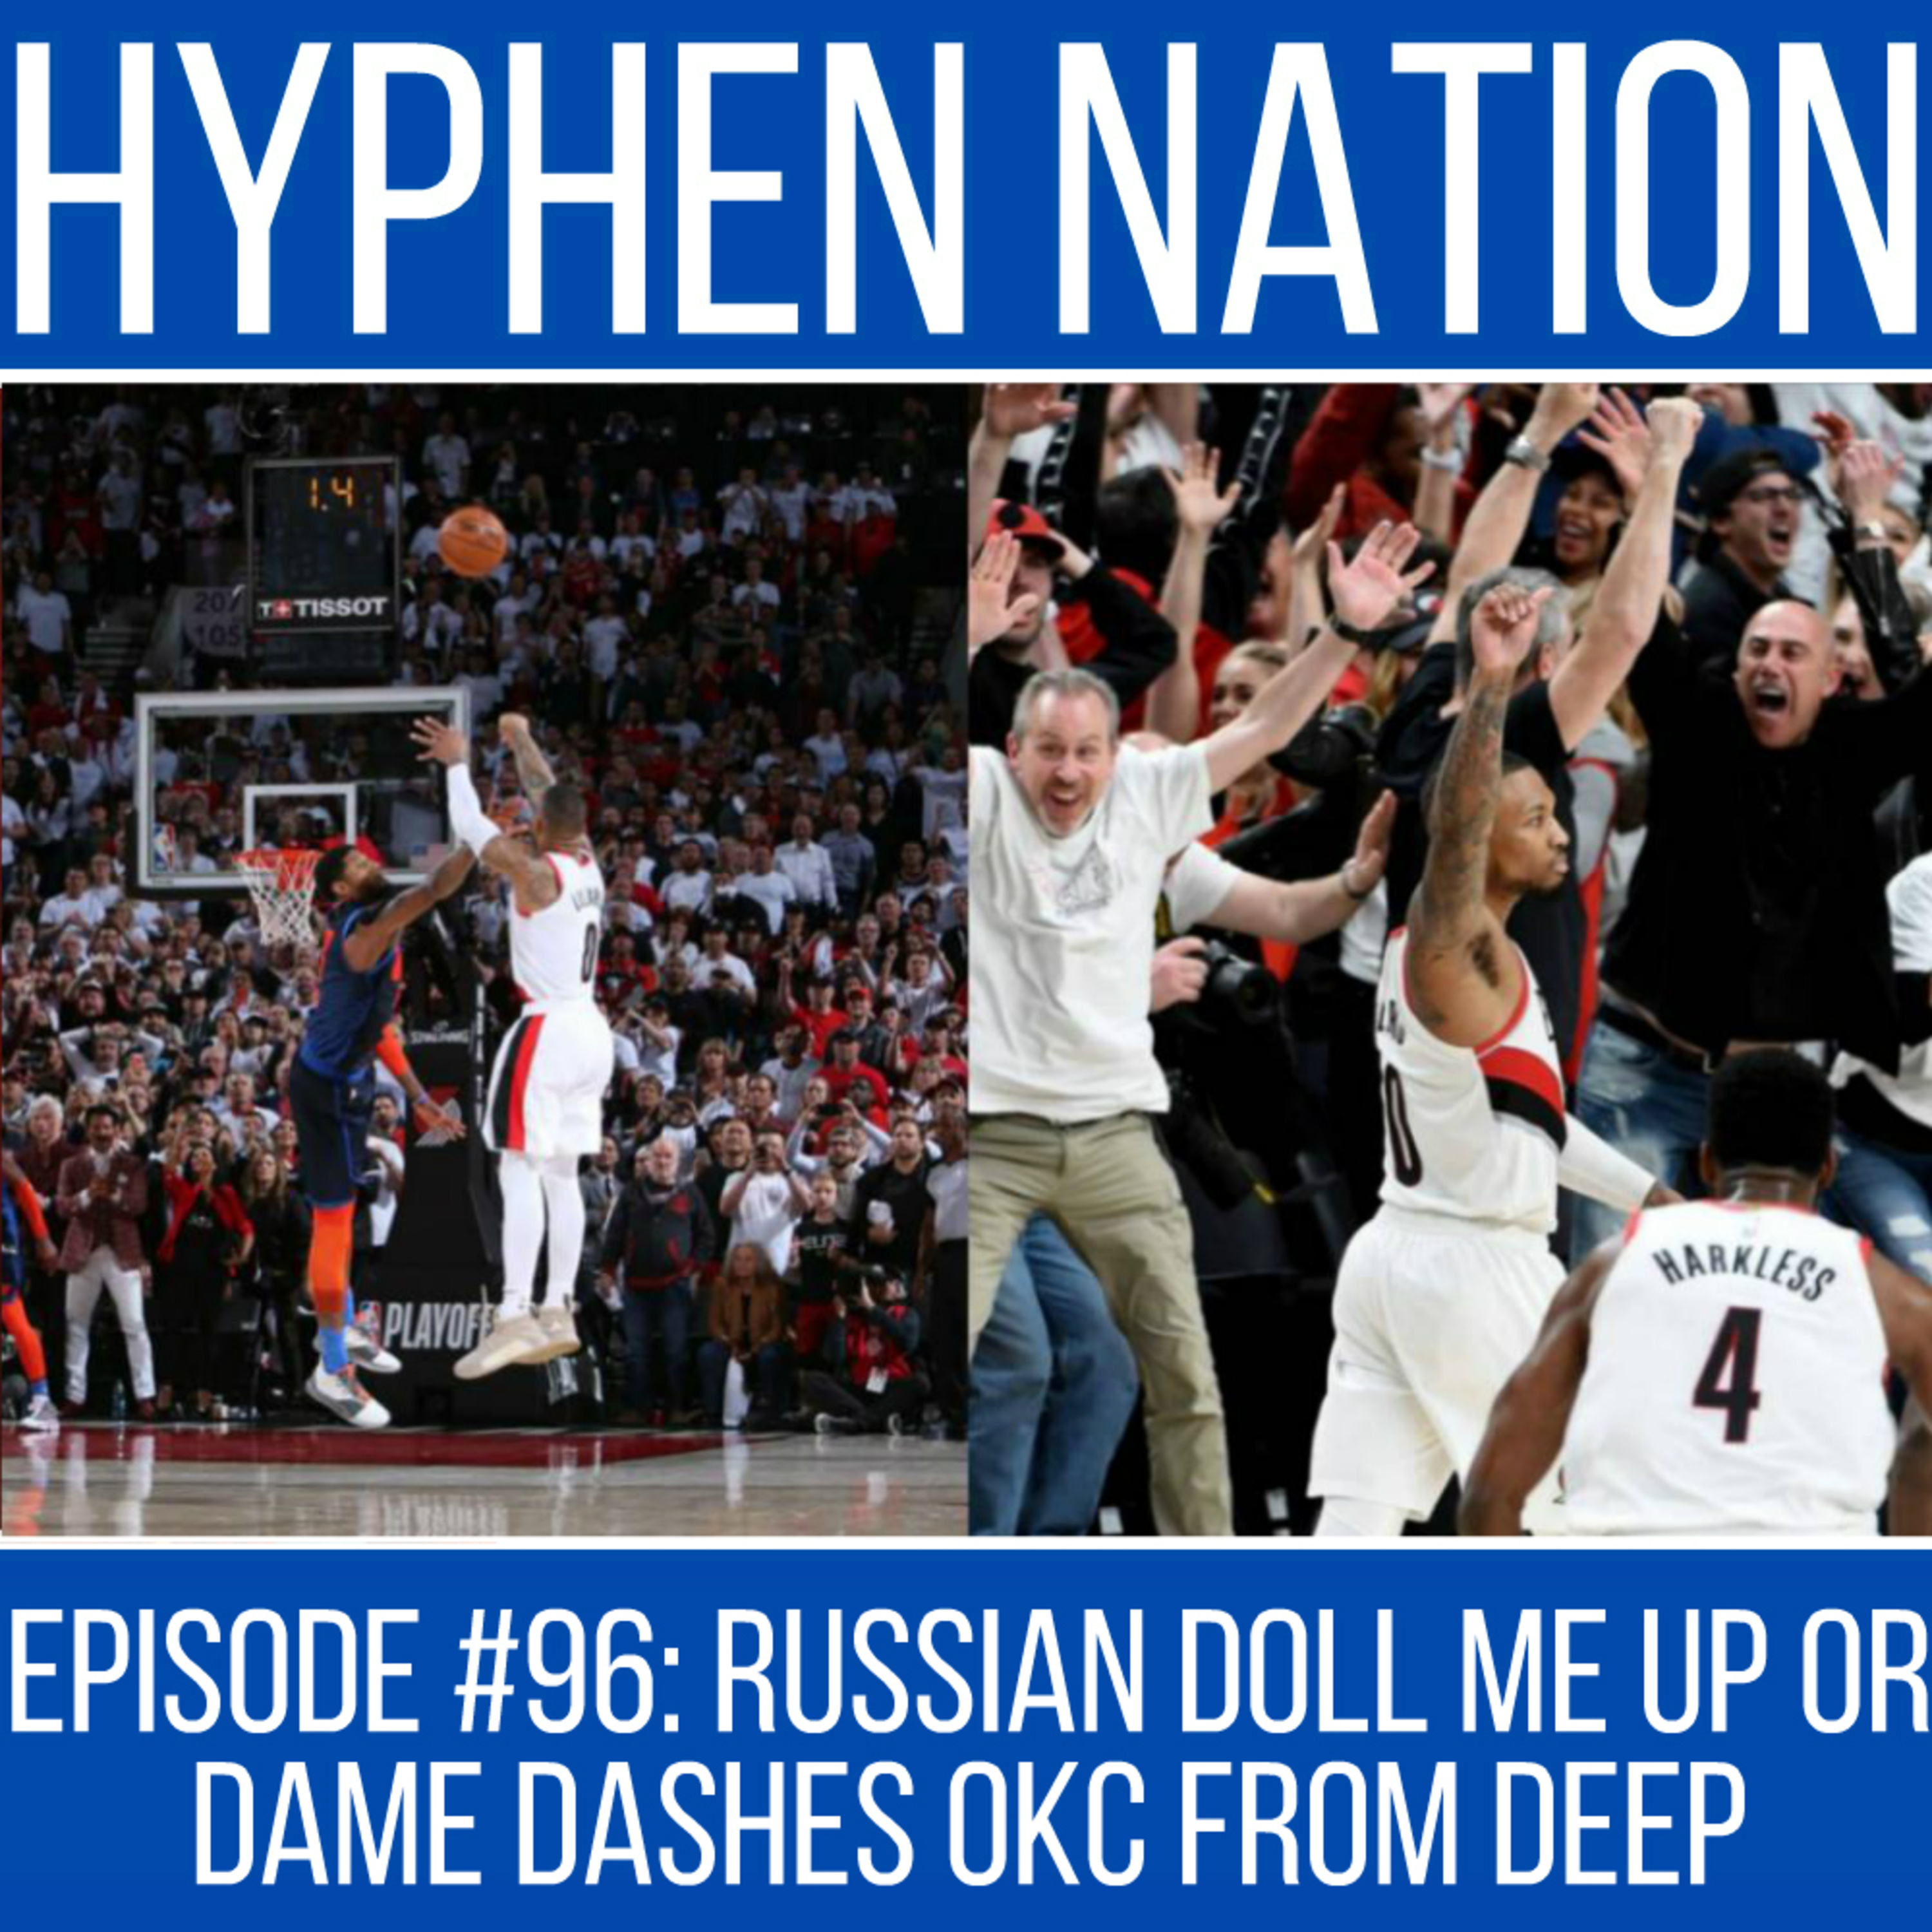 Episode #96: Russian Doll Me Up Or Dame Dashes OKC From Deep